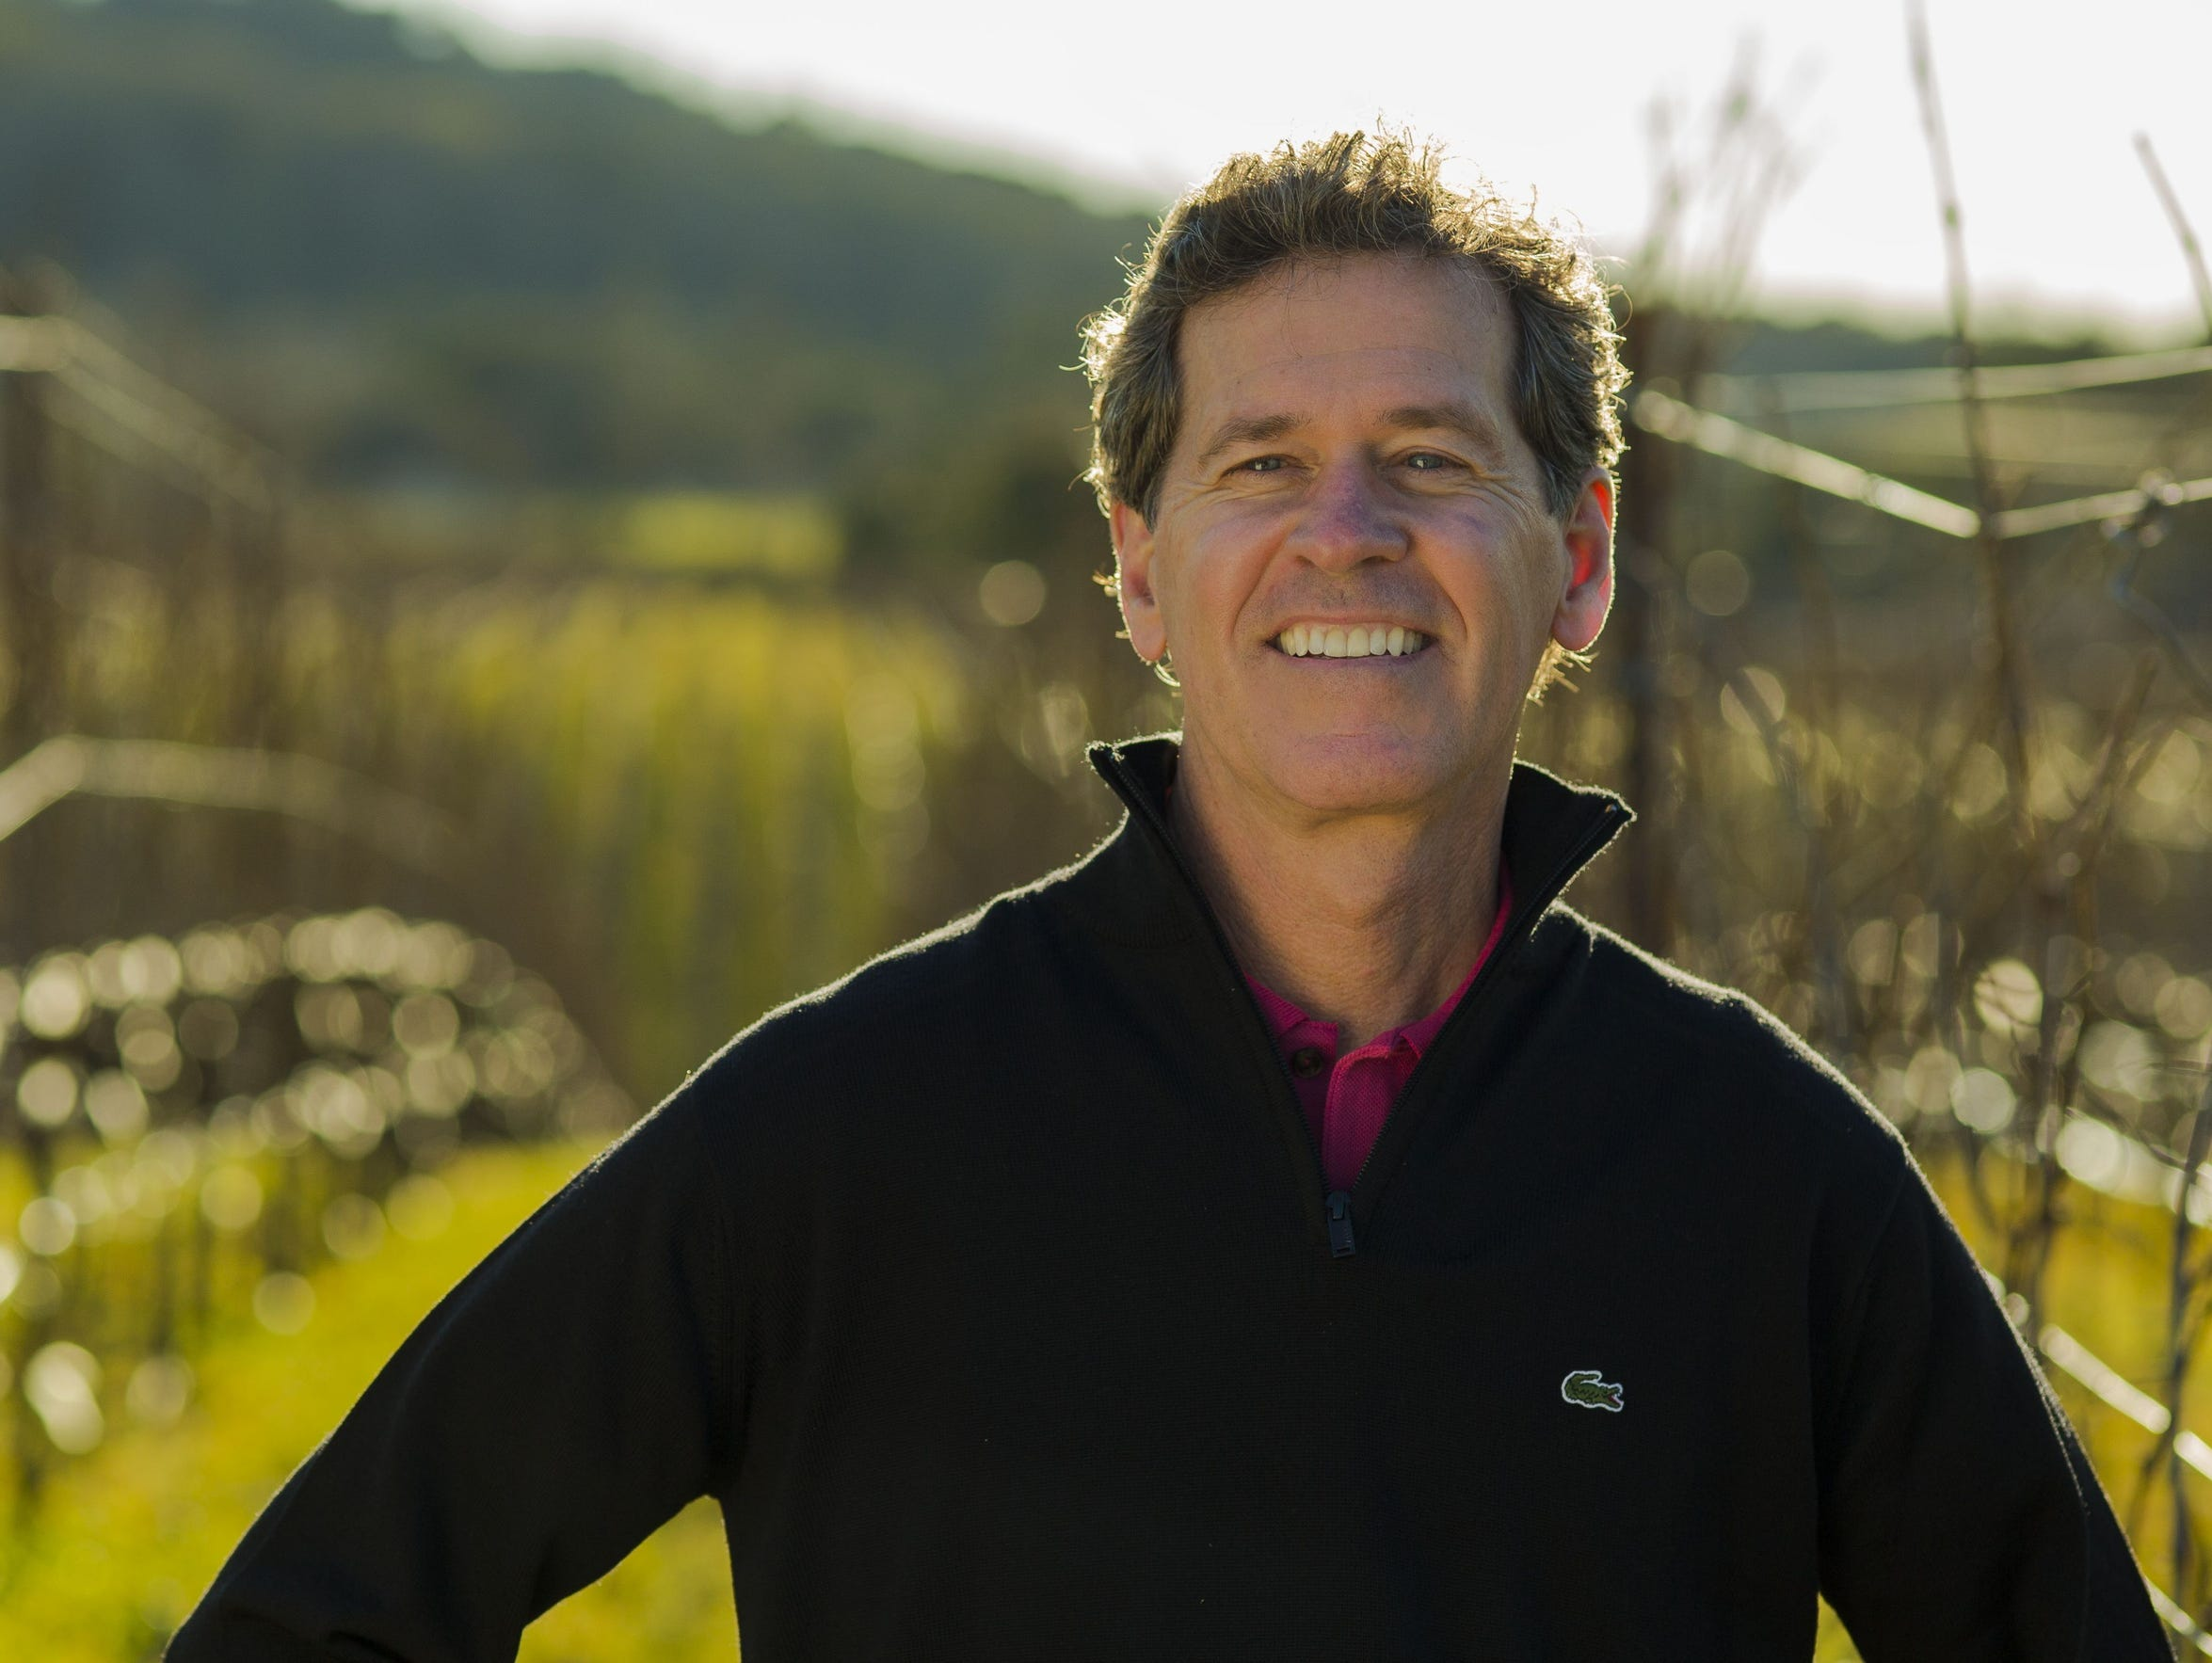 International wine investor Paul Hobbs, of Paul Hobbs